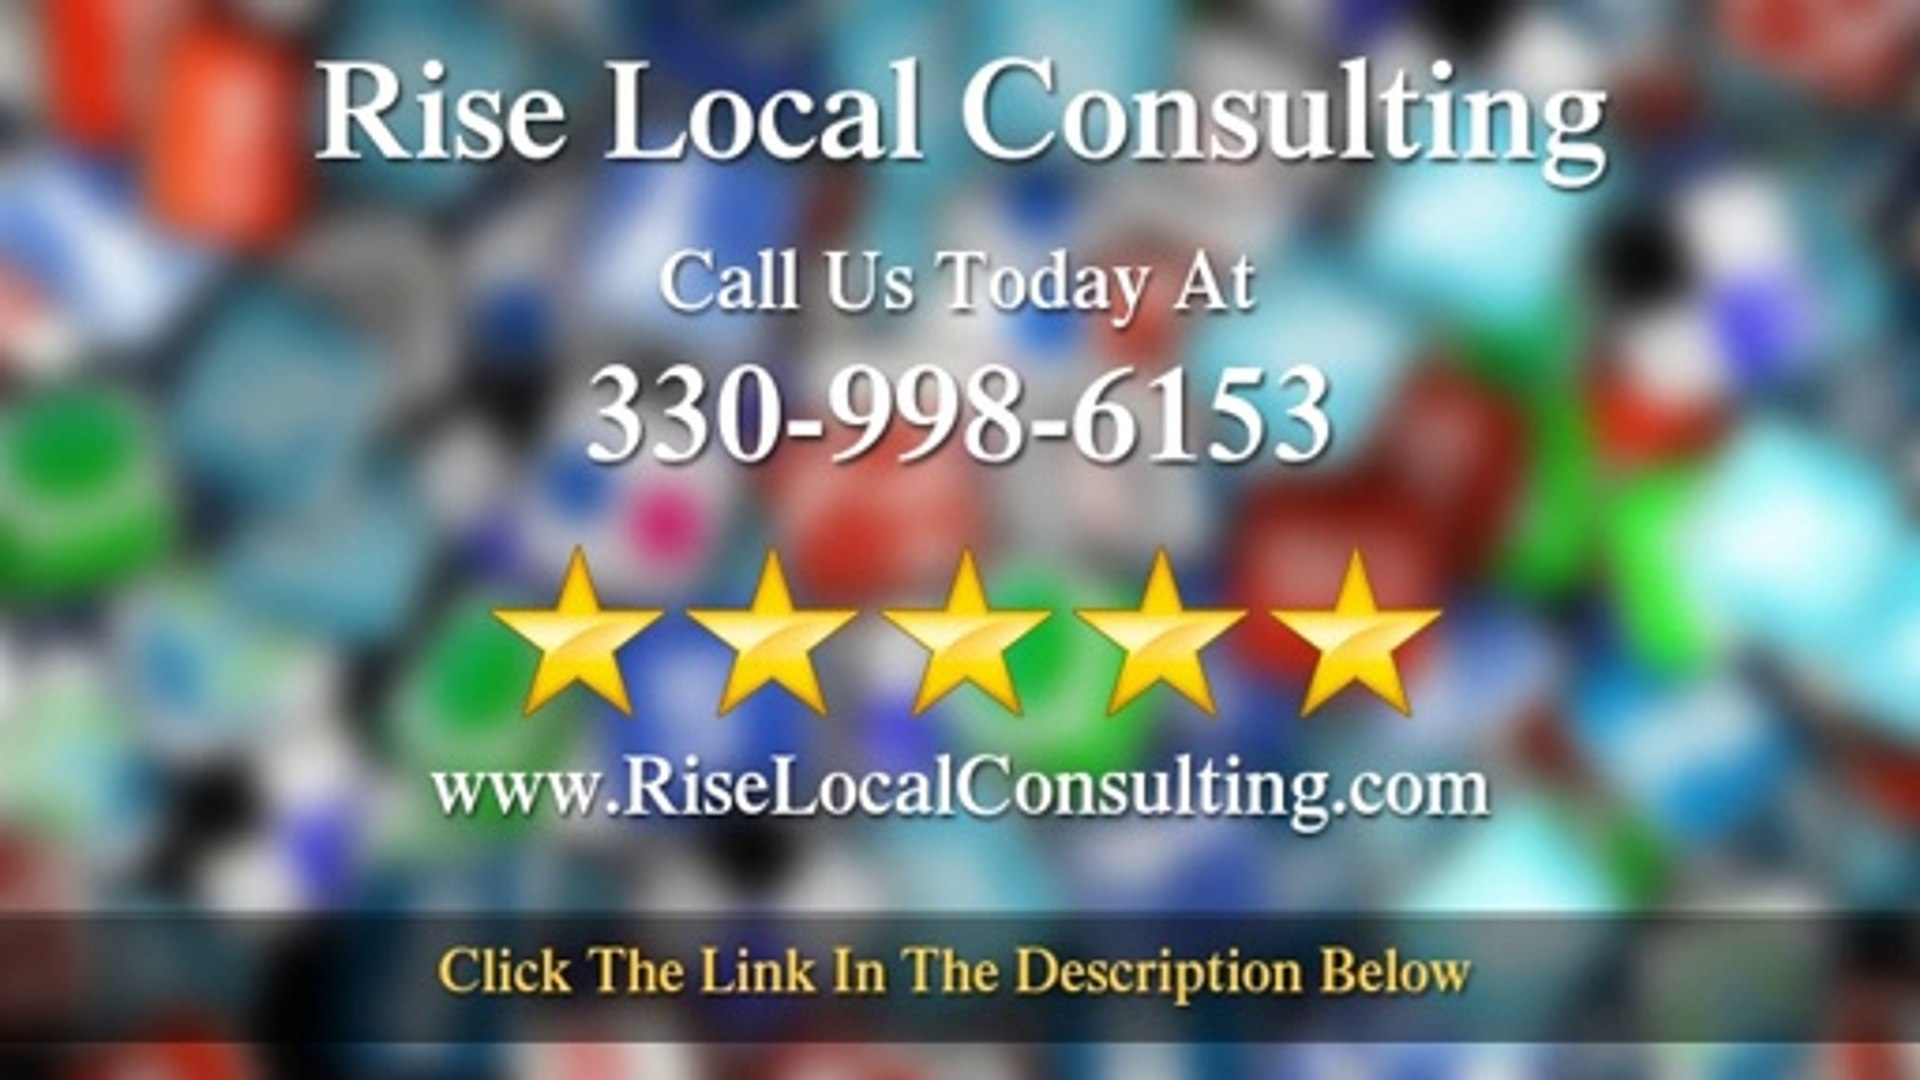 Rise Local Consulting Twinsburg Superb 5 Star Review by Peter W.